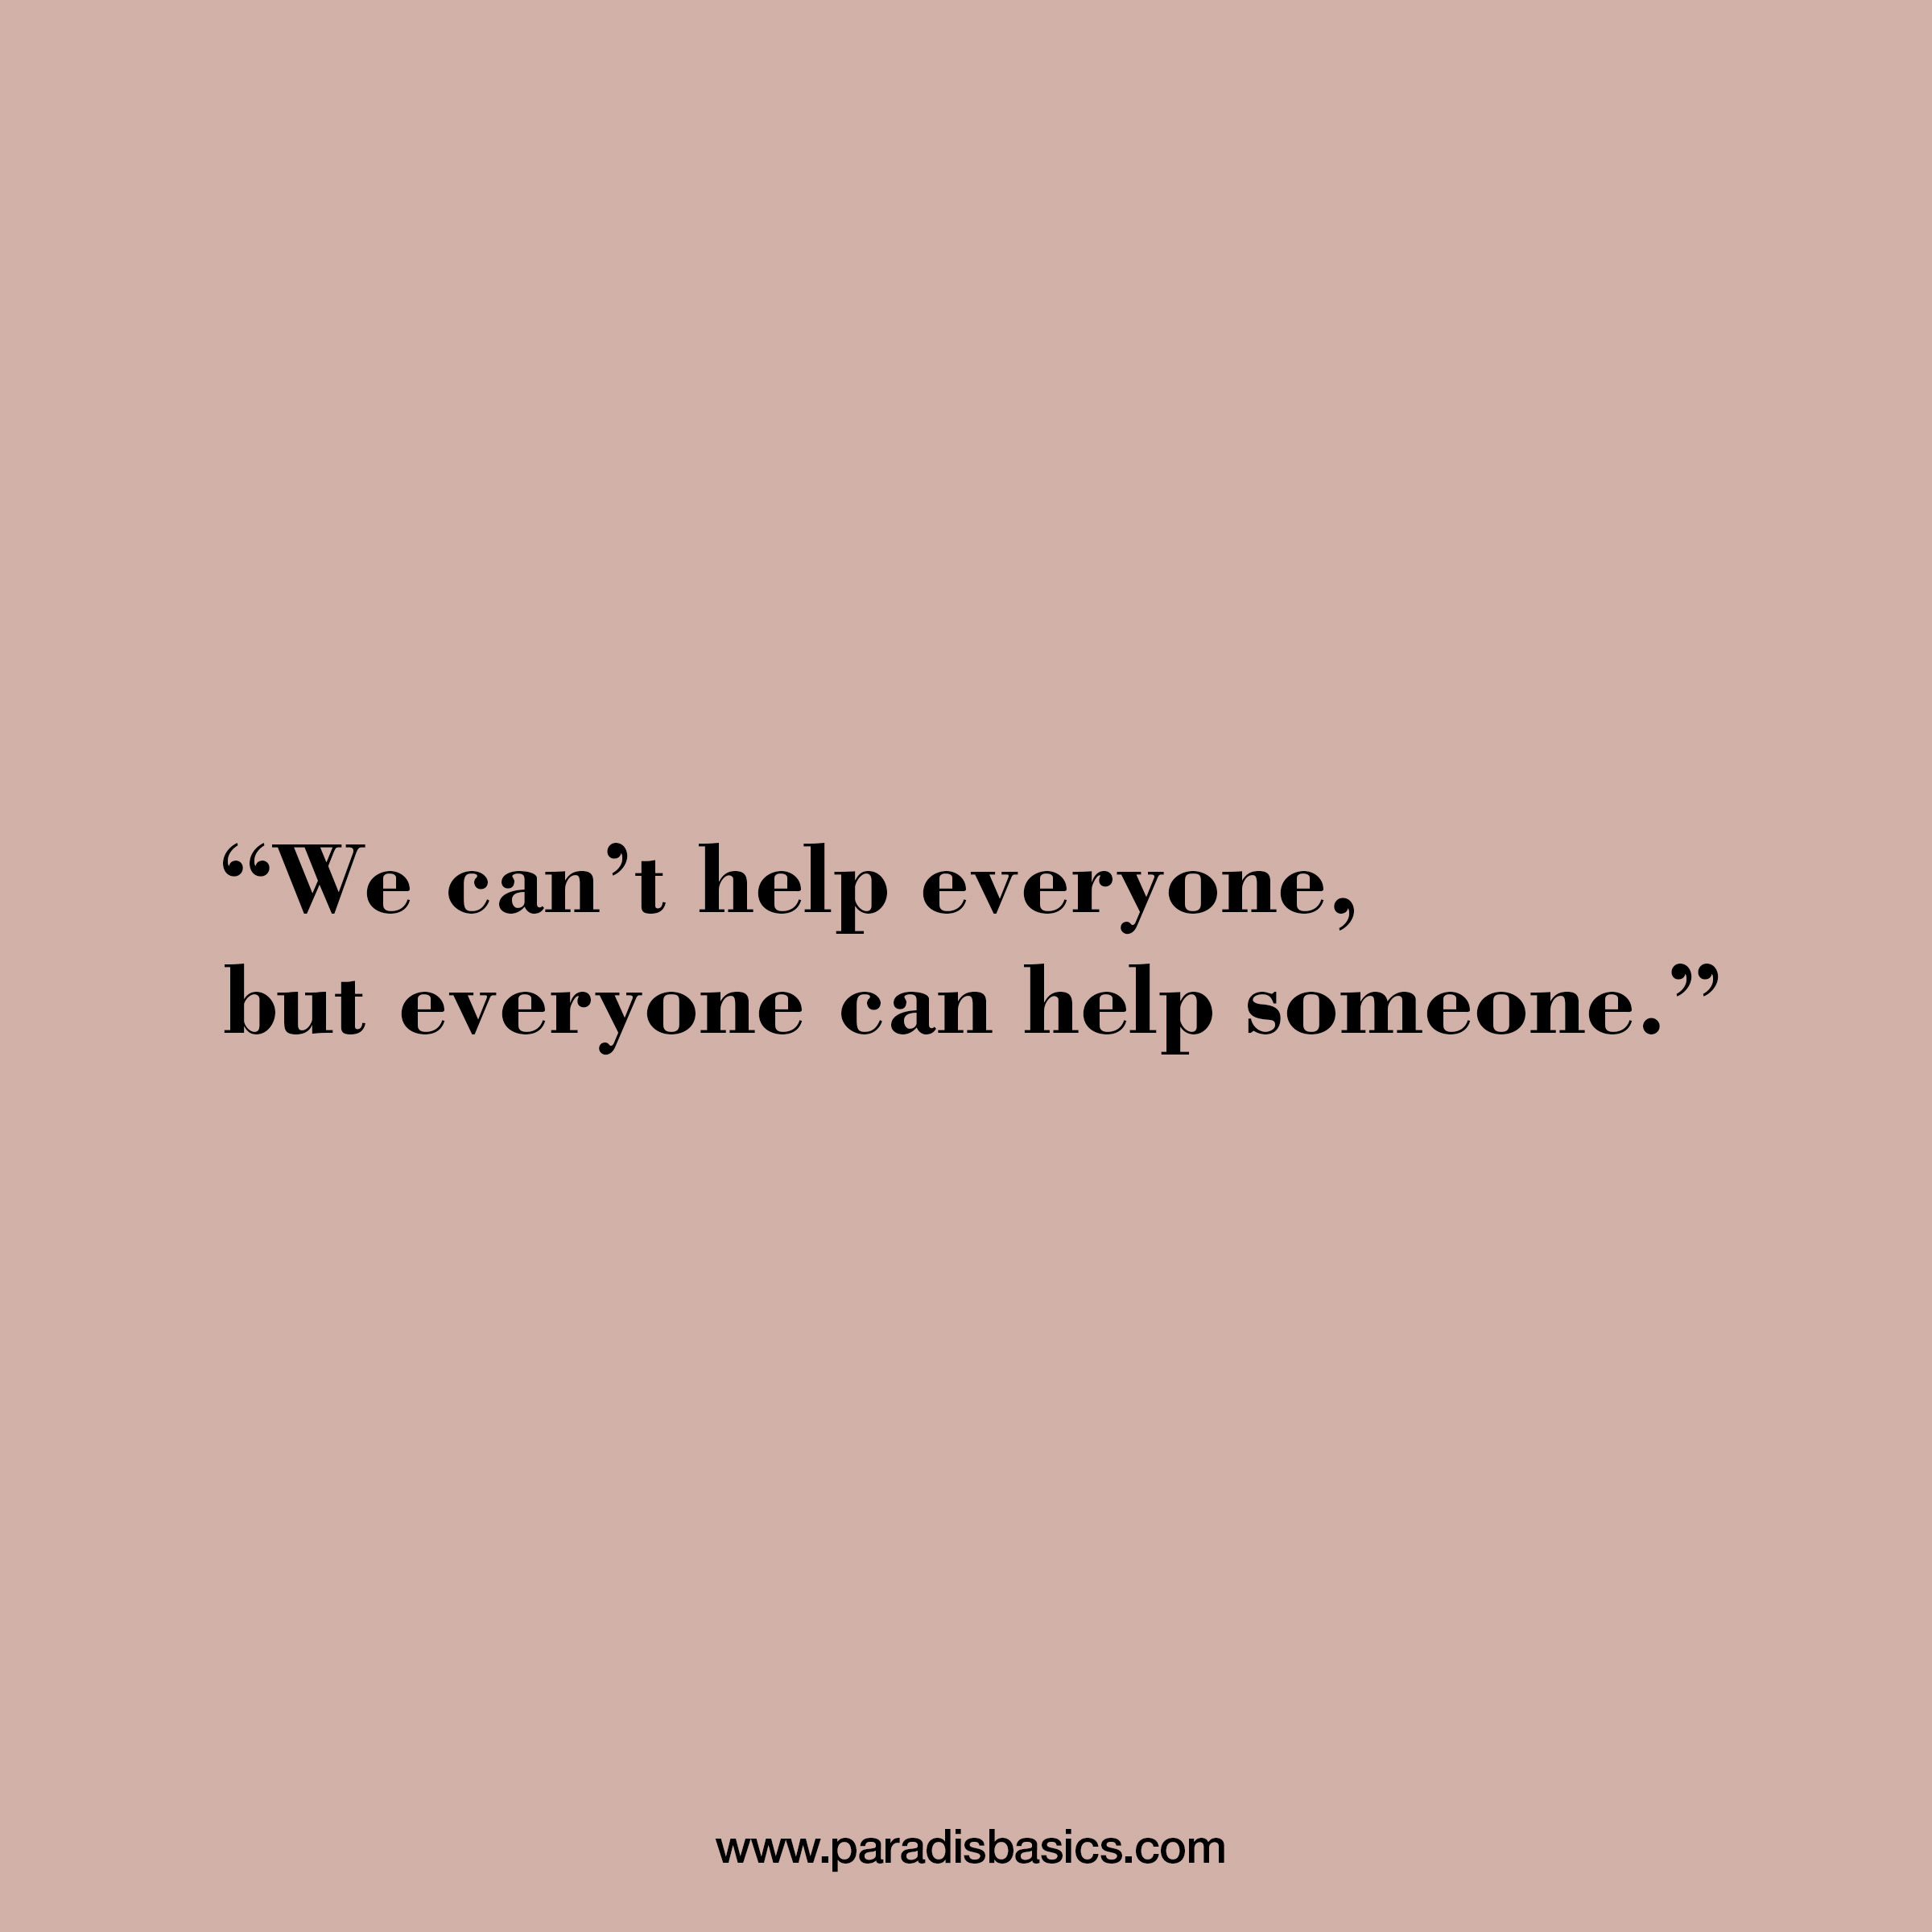 We can't help everyone, but everyone can help someone